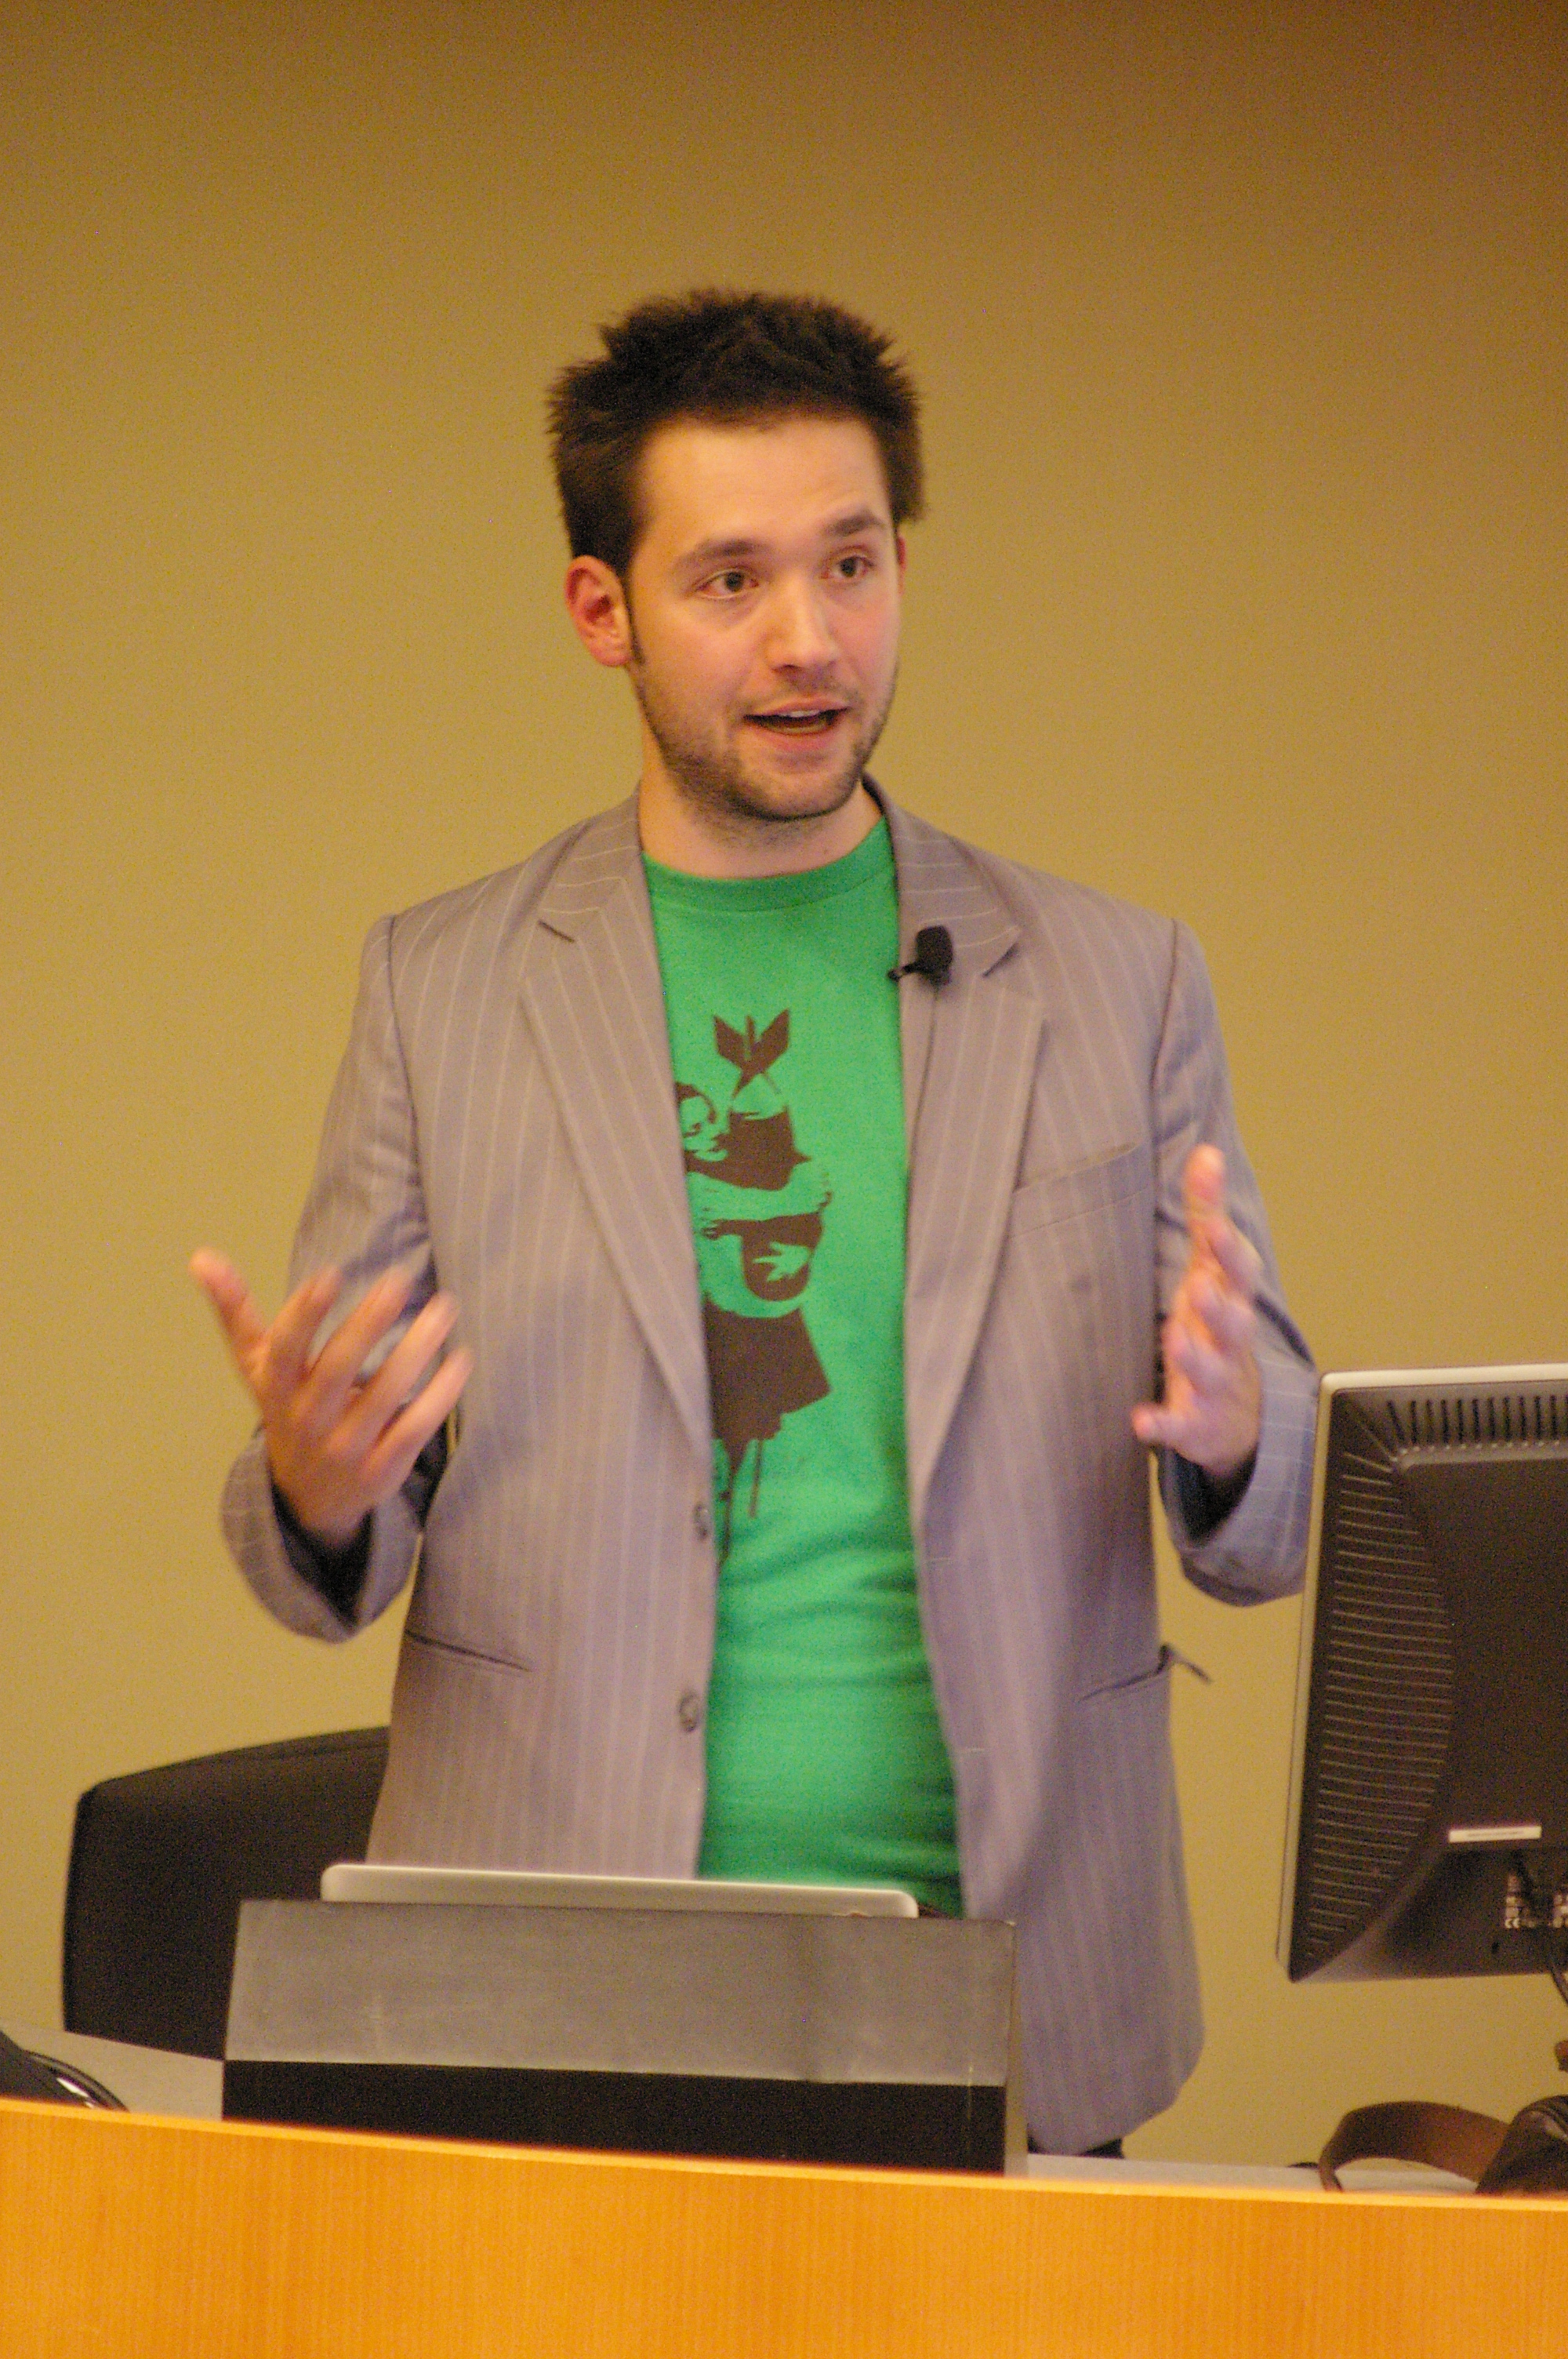 Co-founder Alexis Ohanian speaking in 2009